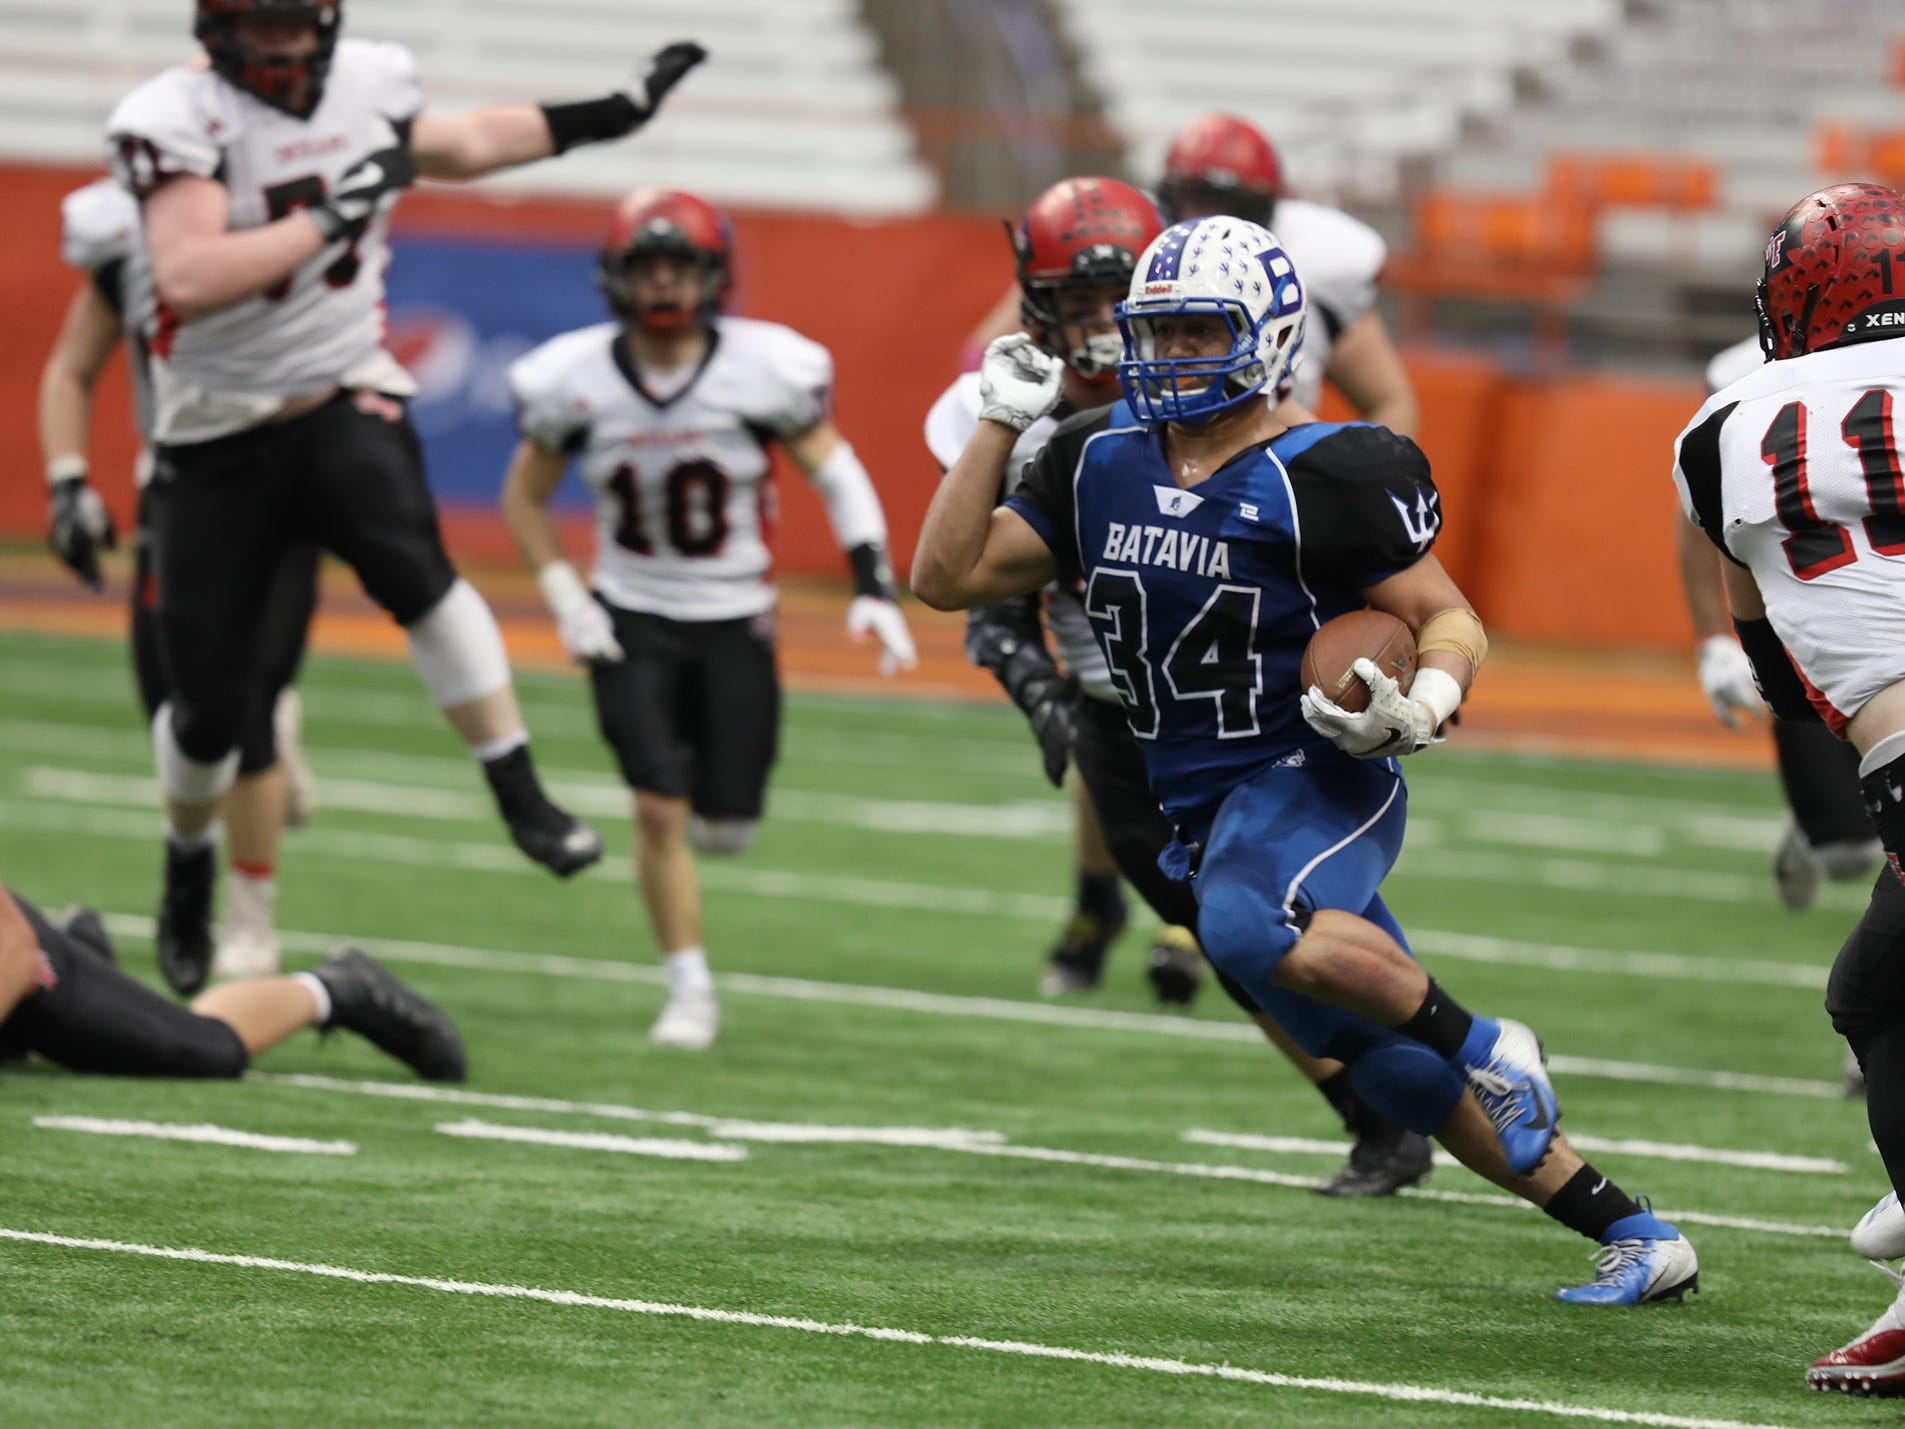 Ray Leach runs 83 yards for a touchdown during the NYSPHSAA Class B state championship game on Saturday in Syracuse.